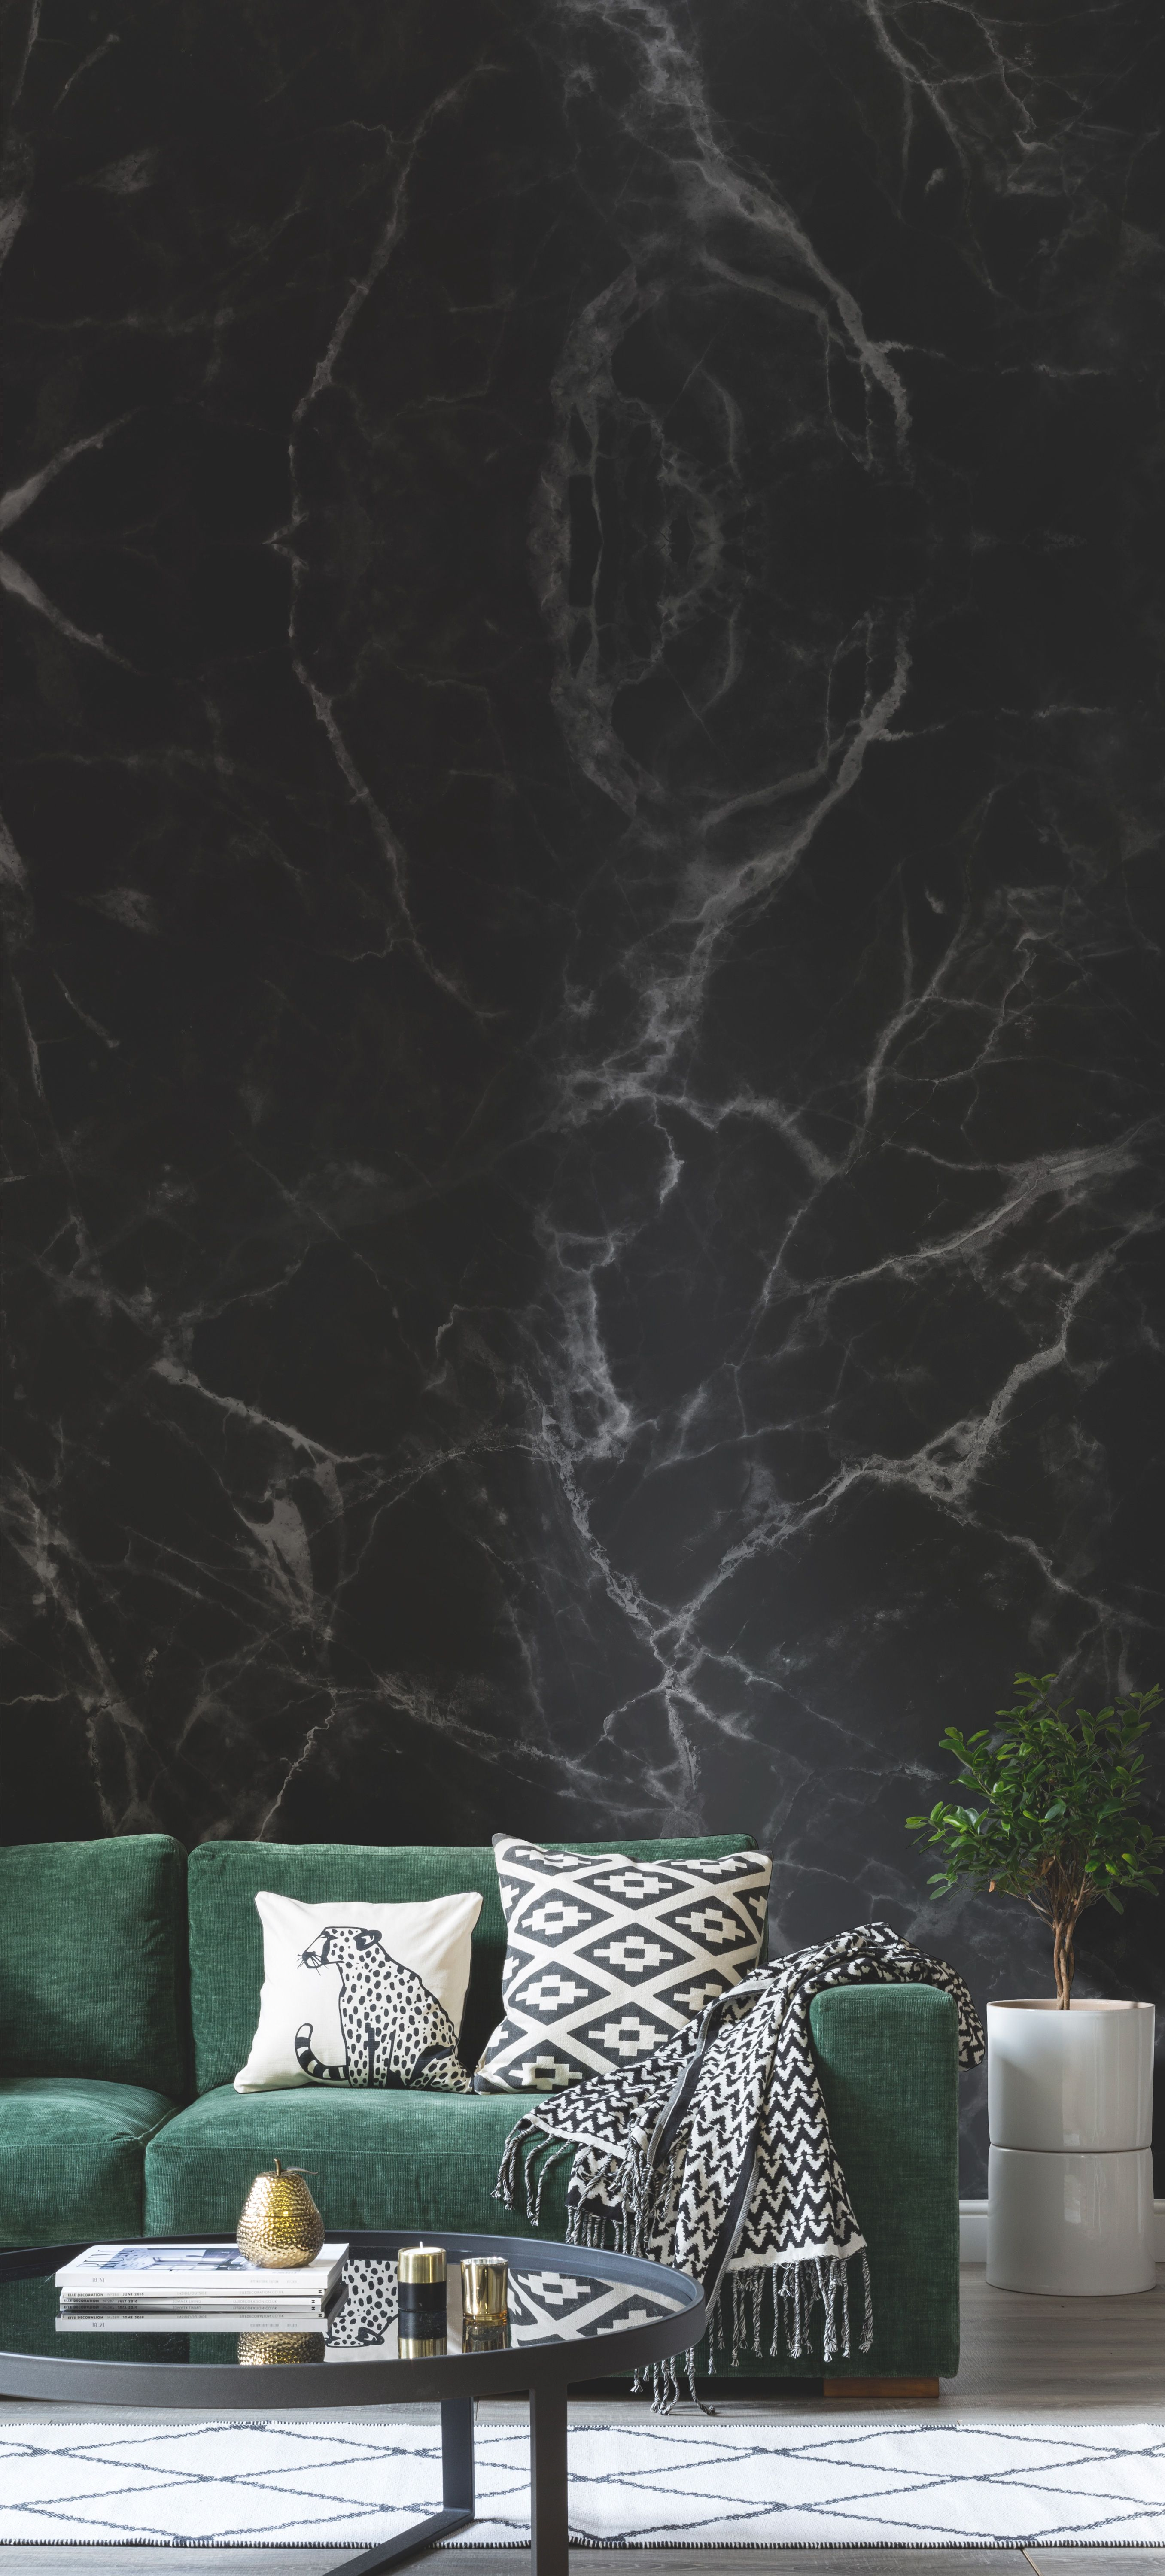 Add A Slice Of Luxe Into Your Home With This Faux Black Marble Wallpaper  Mural. Itu0027s The Perfect Living Room Idea For Those Looking For A Sense Of  ...